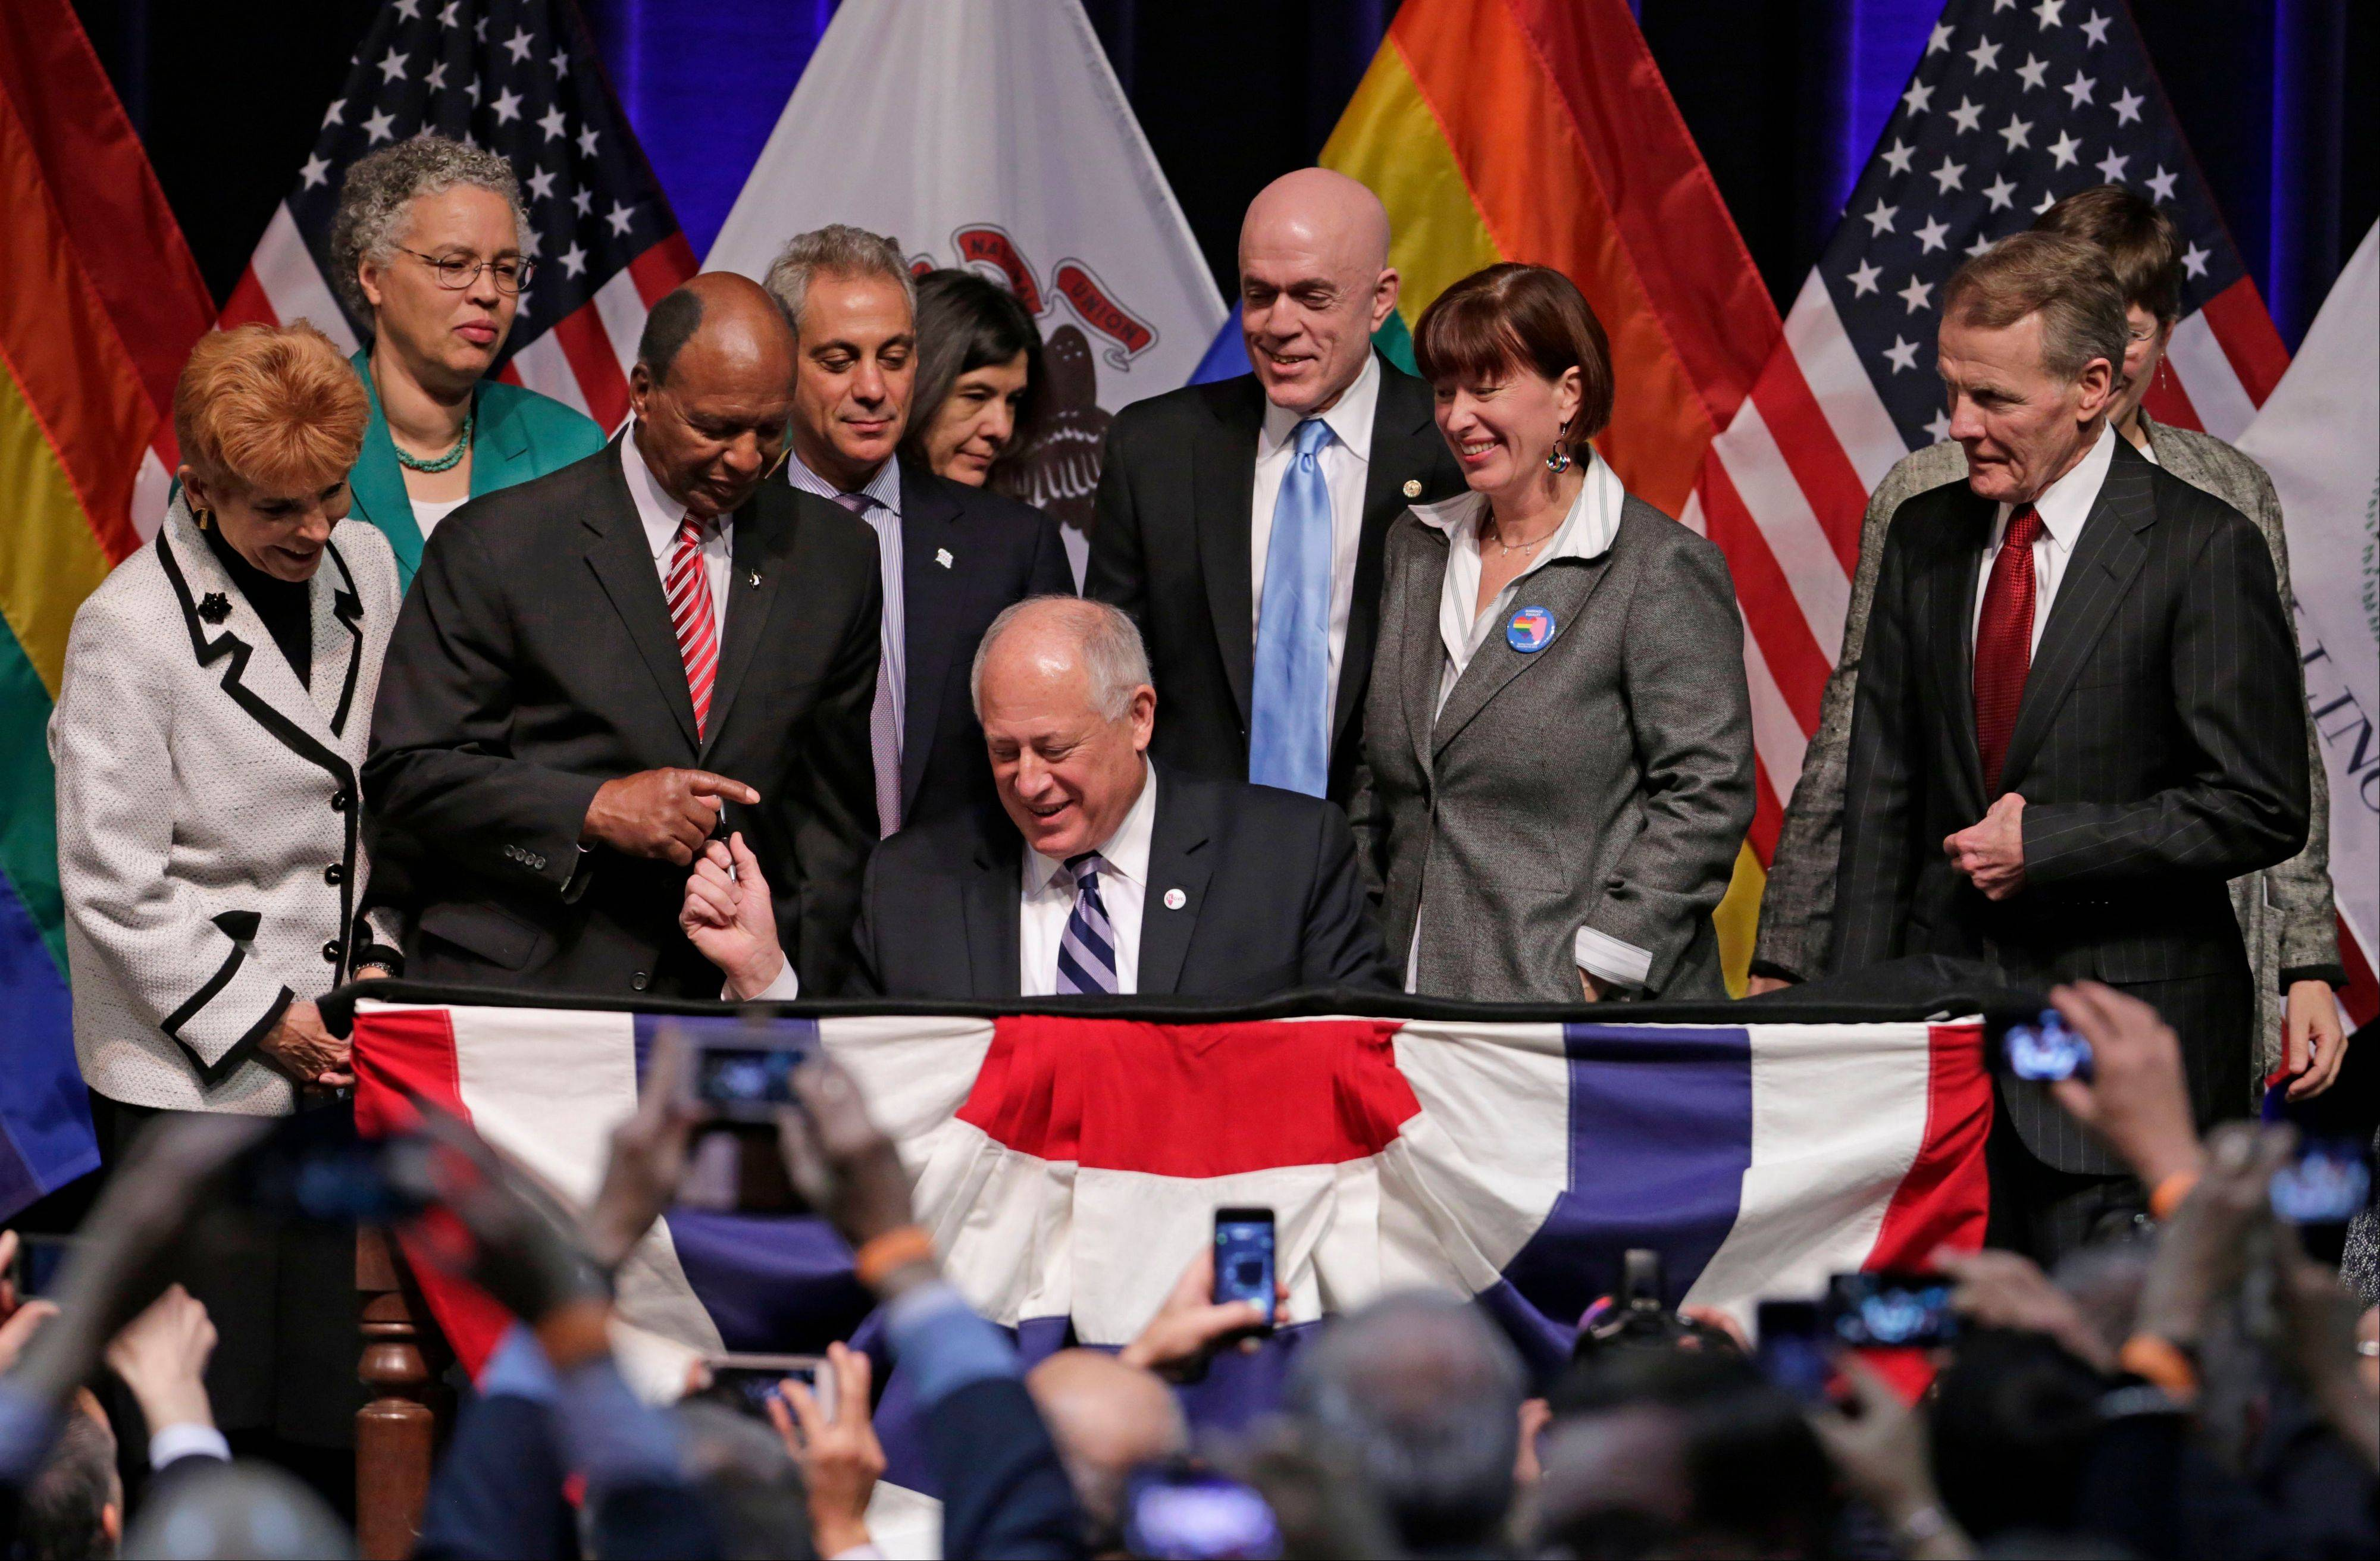 Illinois Gov. Pat Quinn, center, signs the state's Religious Freedom and Marriage Fairness Act into law, making Illinois the 16th state in the nation to embrace full marriage equality for same sex couples.